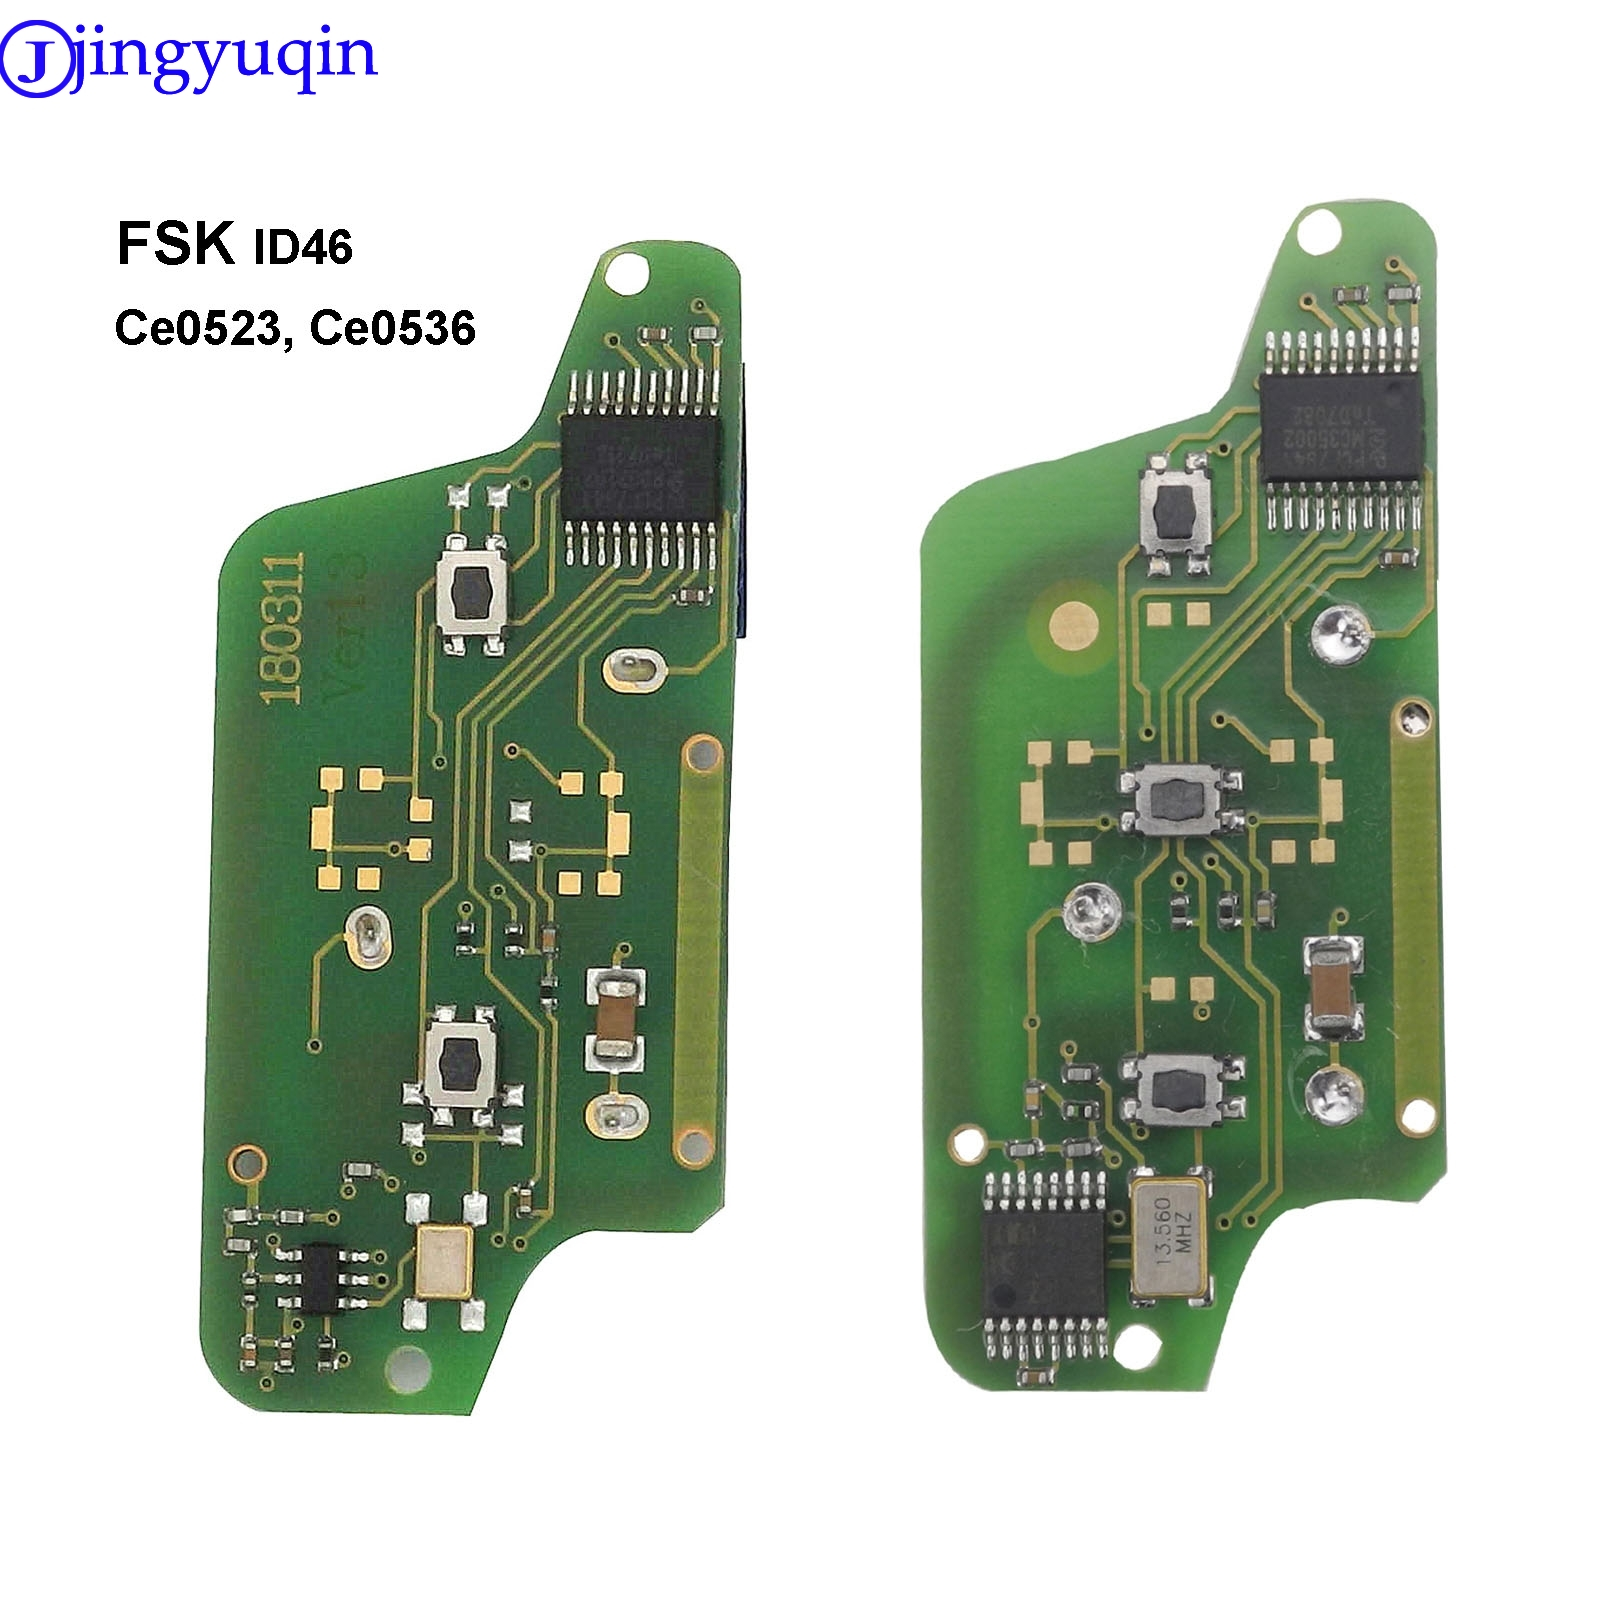 for Citroen C2 C4 C5 C6 Picasso 2008 For <font><b>Peugeot</b></font> 207 307 308 407 607 ASK Remote <font><b>Key</b></font> Electronic Circuit Board 3 Button Ce0536 image